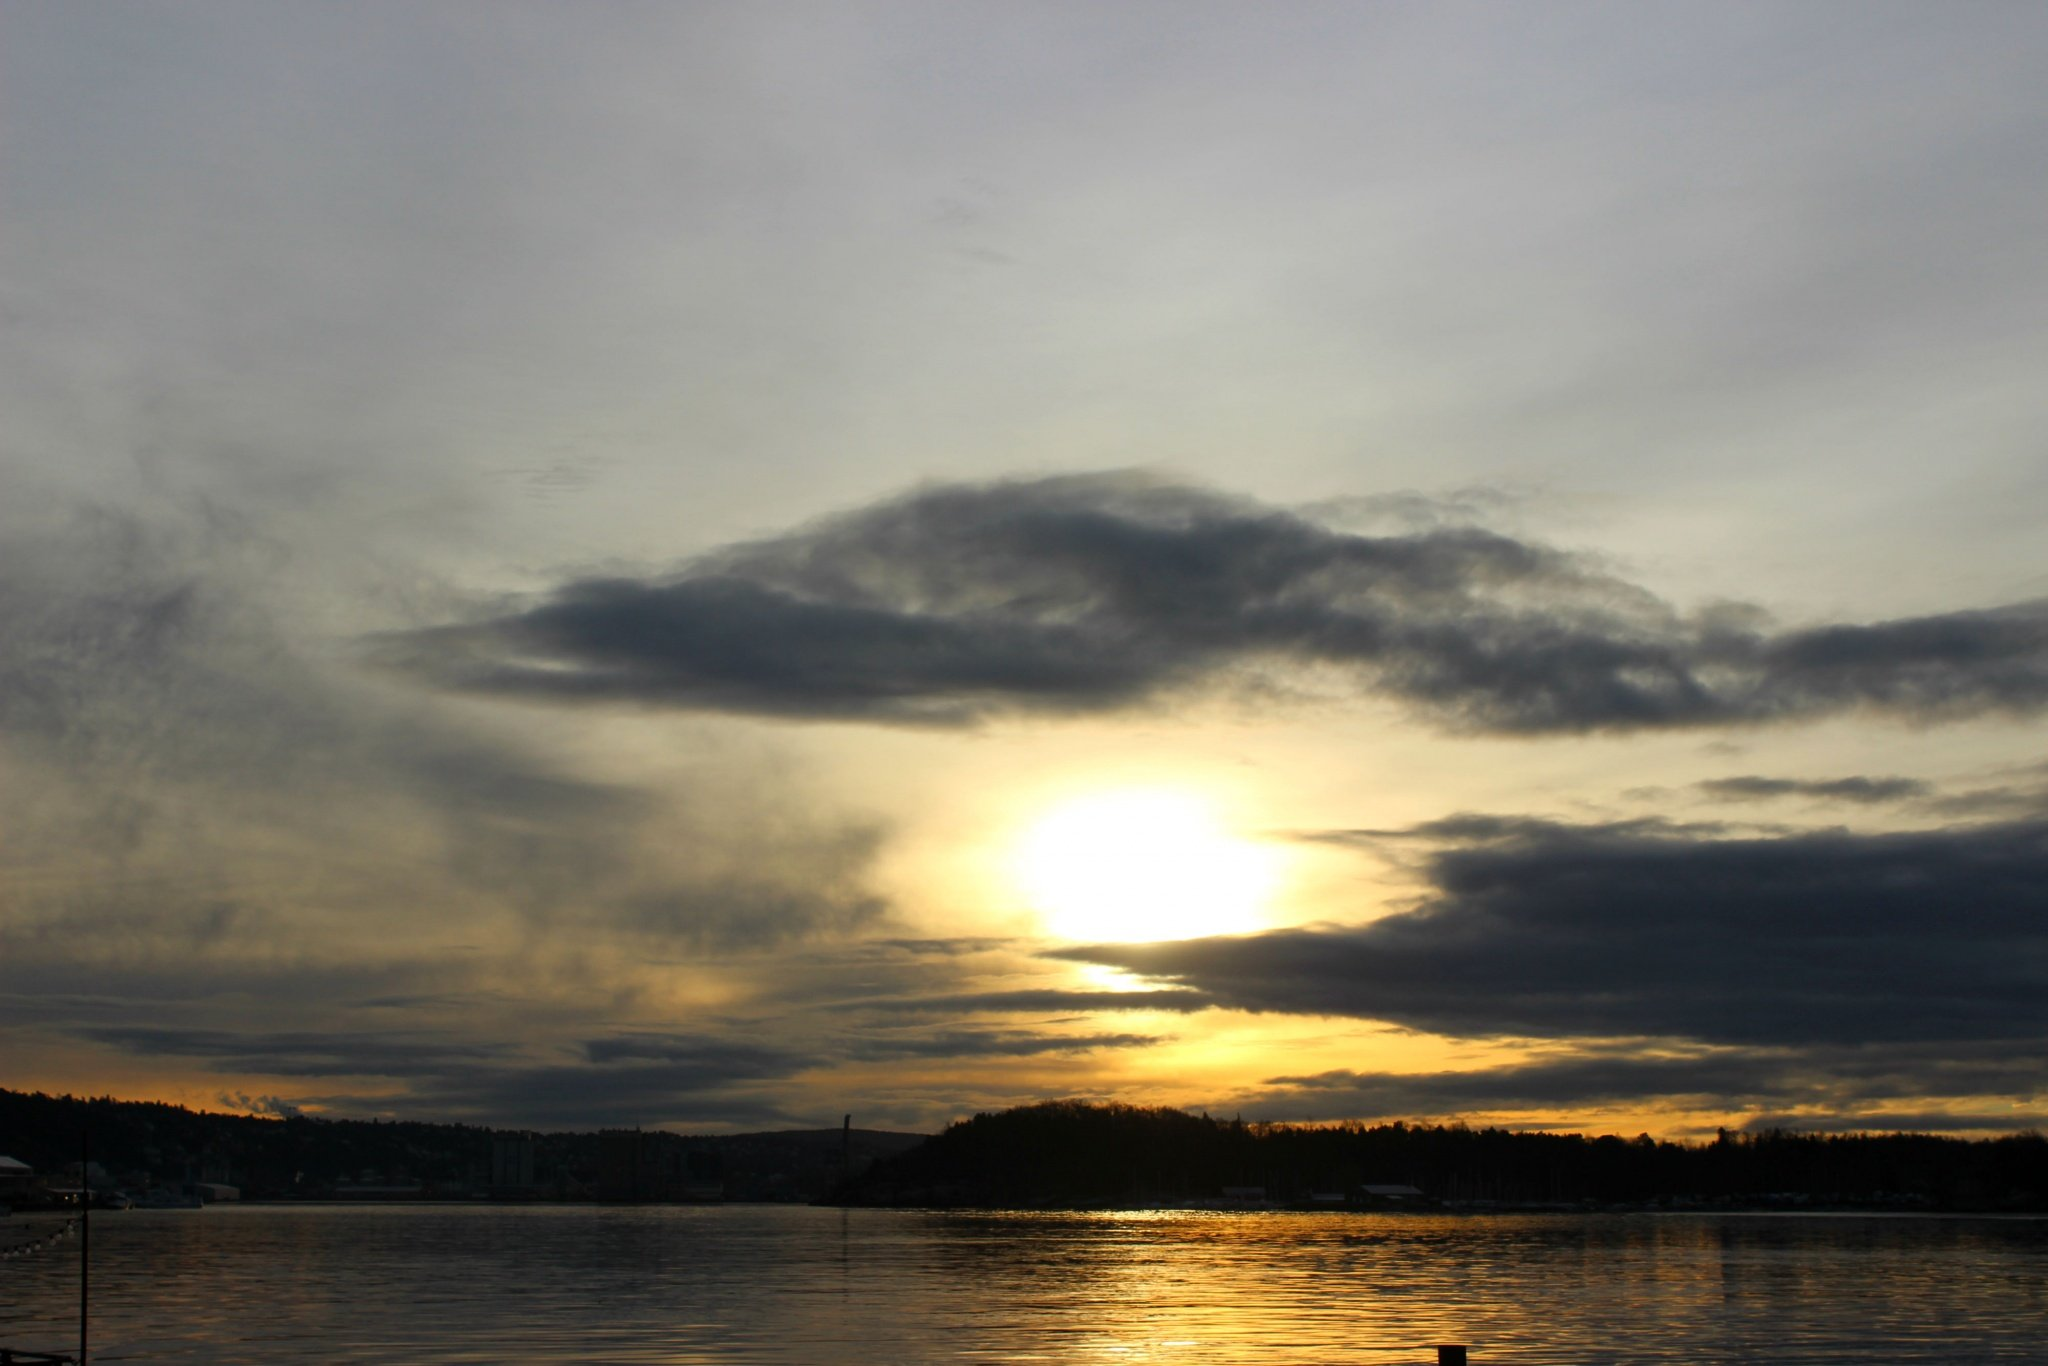 yellow-grey sunset in Oslo, Norway